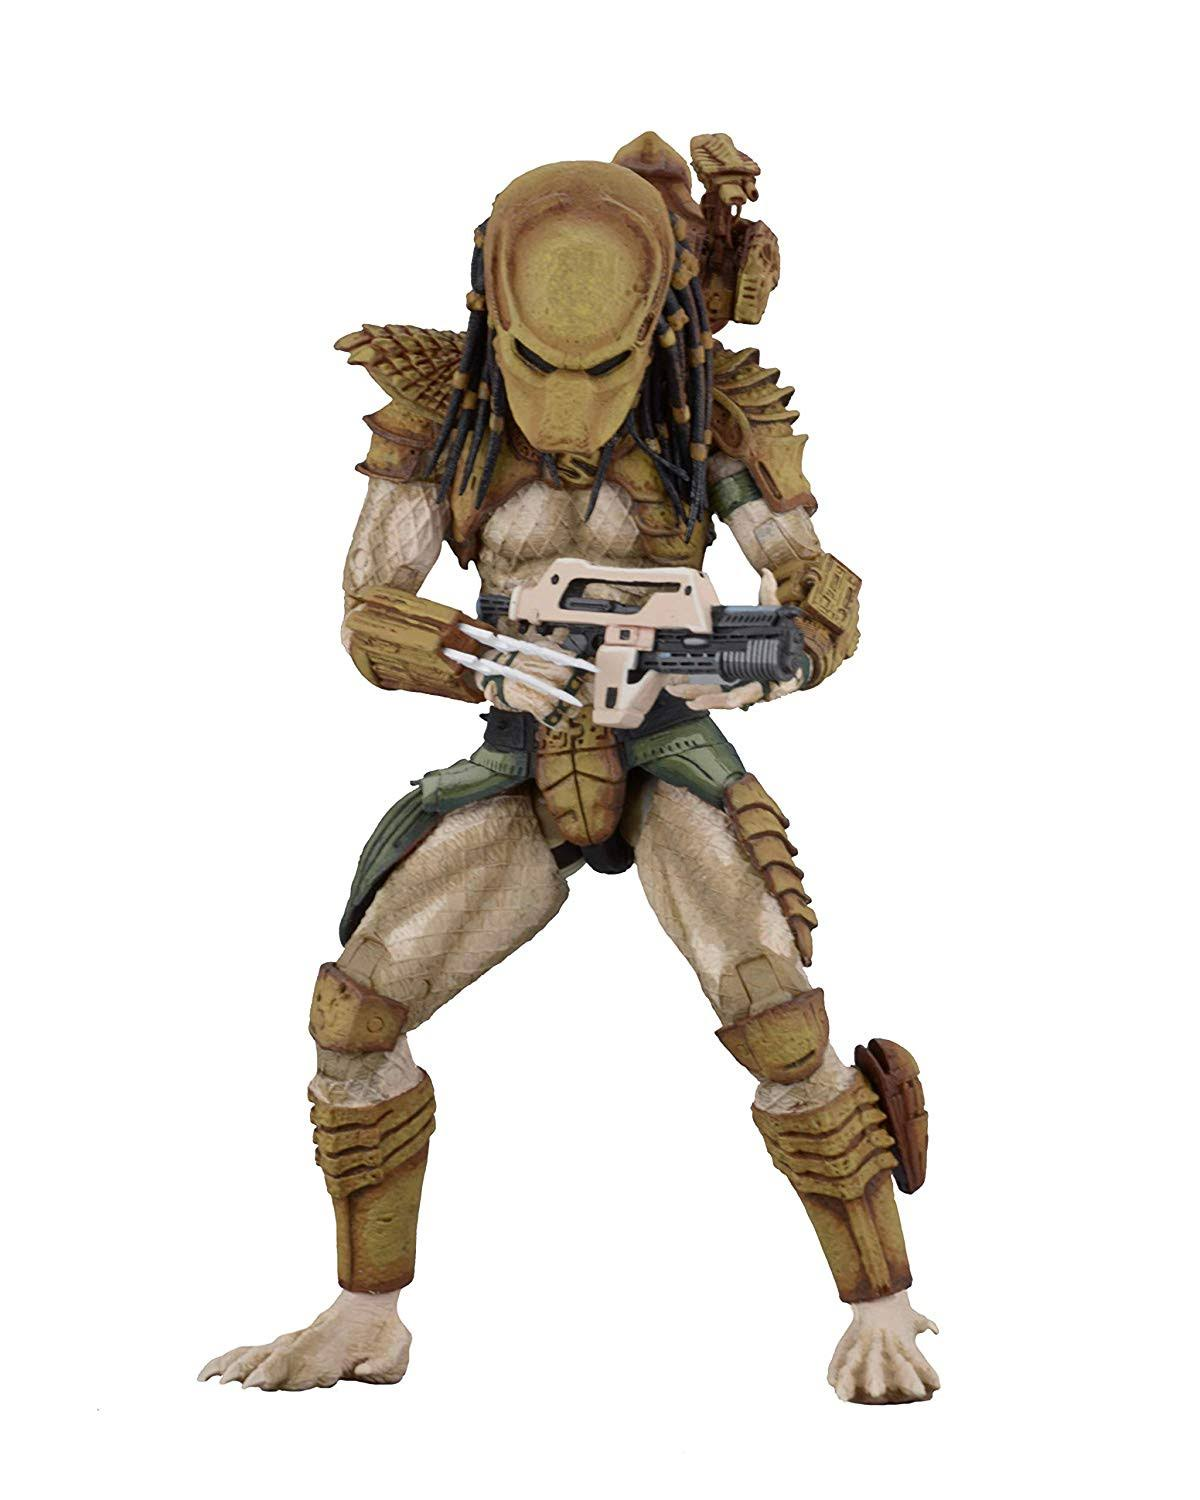 Neca Aliens Vs Predator Hunter Predator Action Figure - 7""